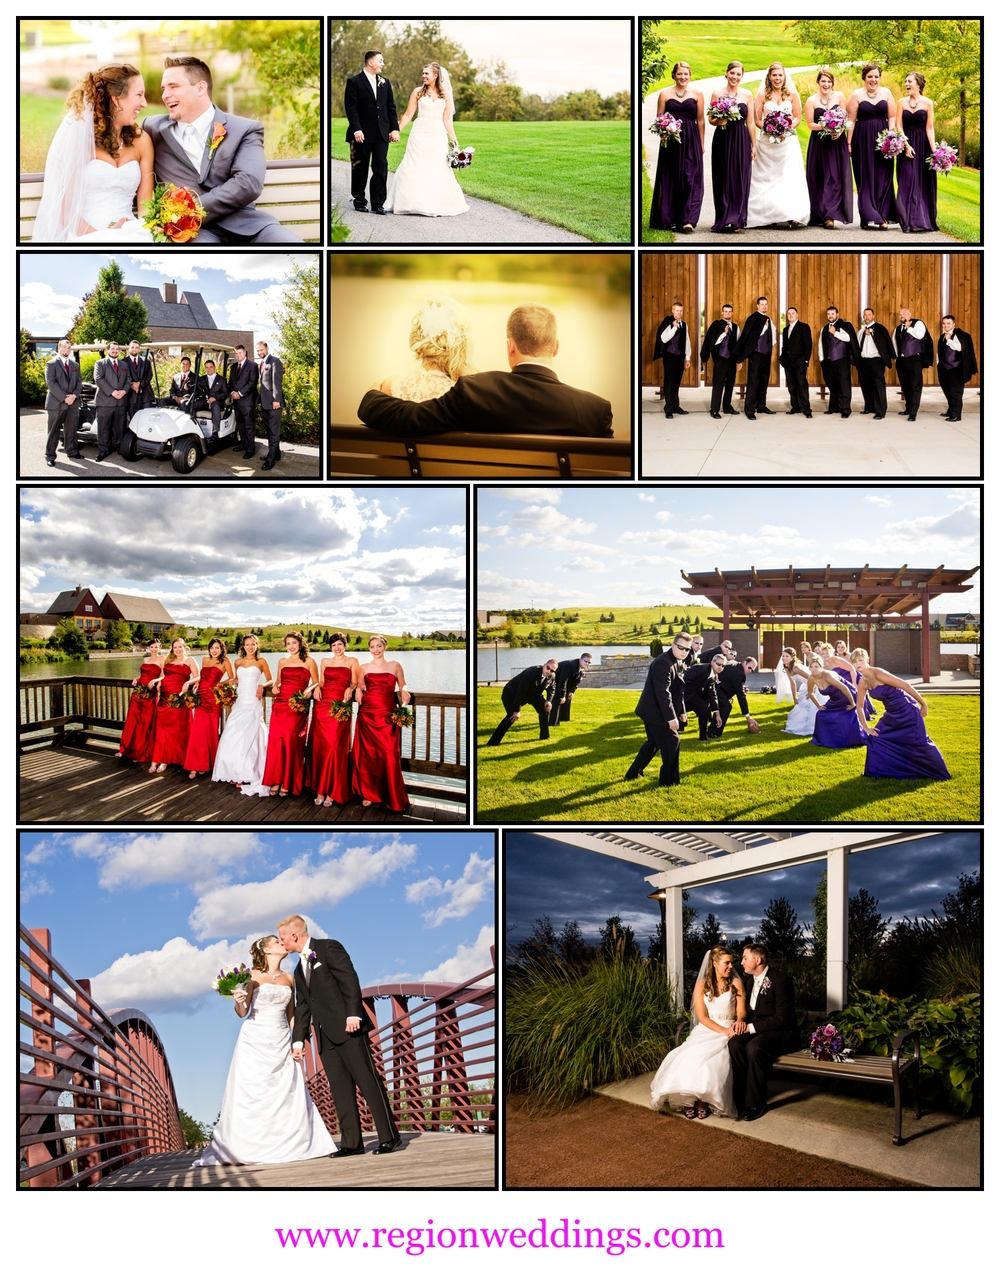 centennial-park-bridal-show-collage.jpg